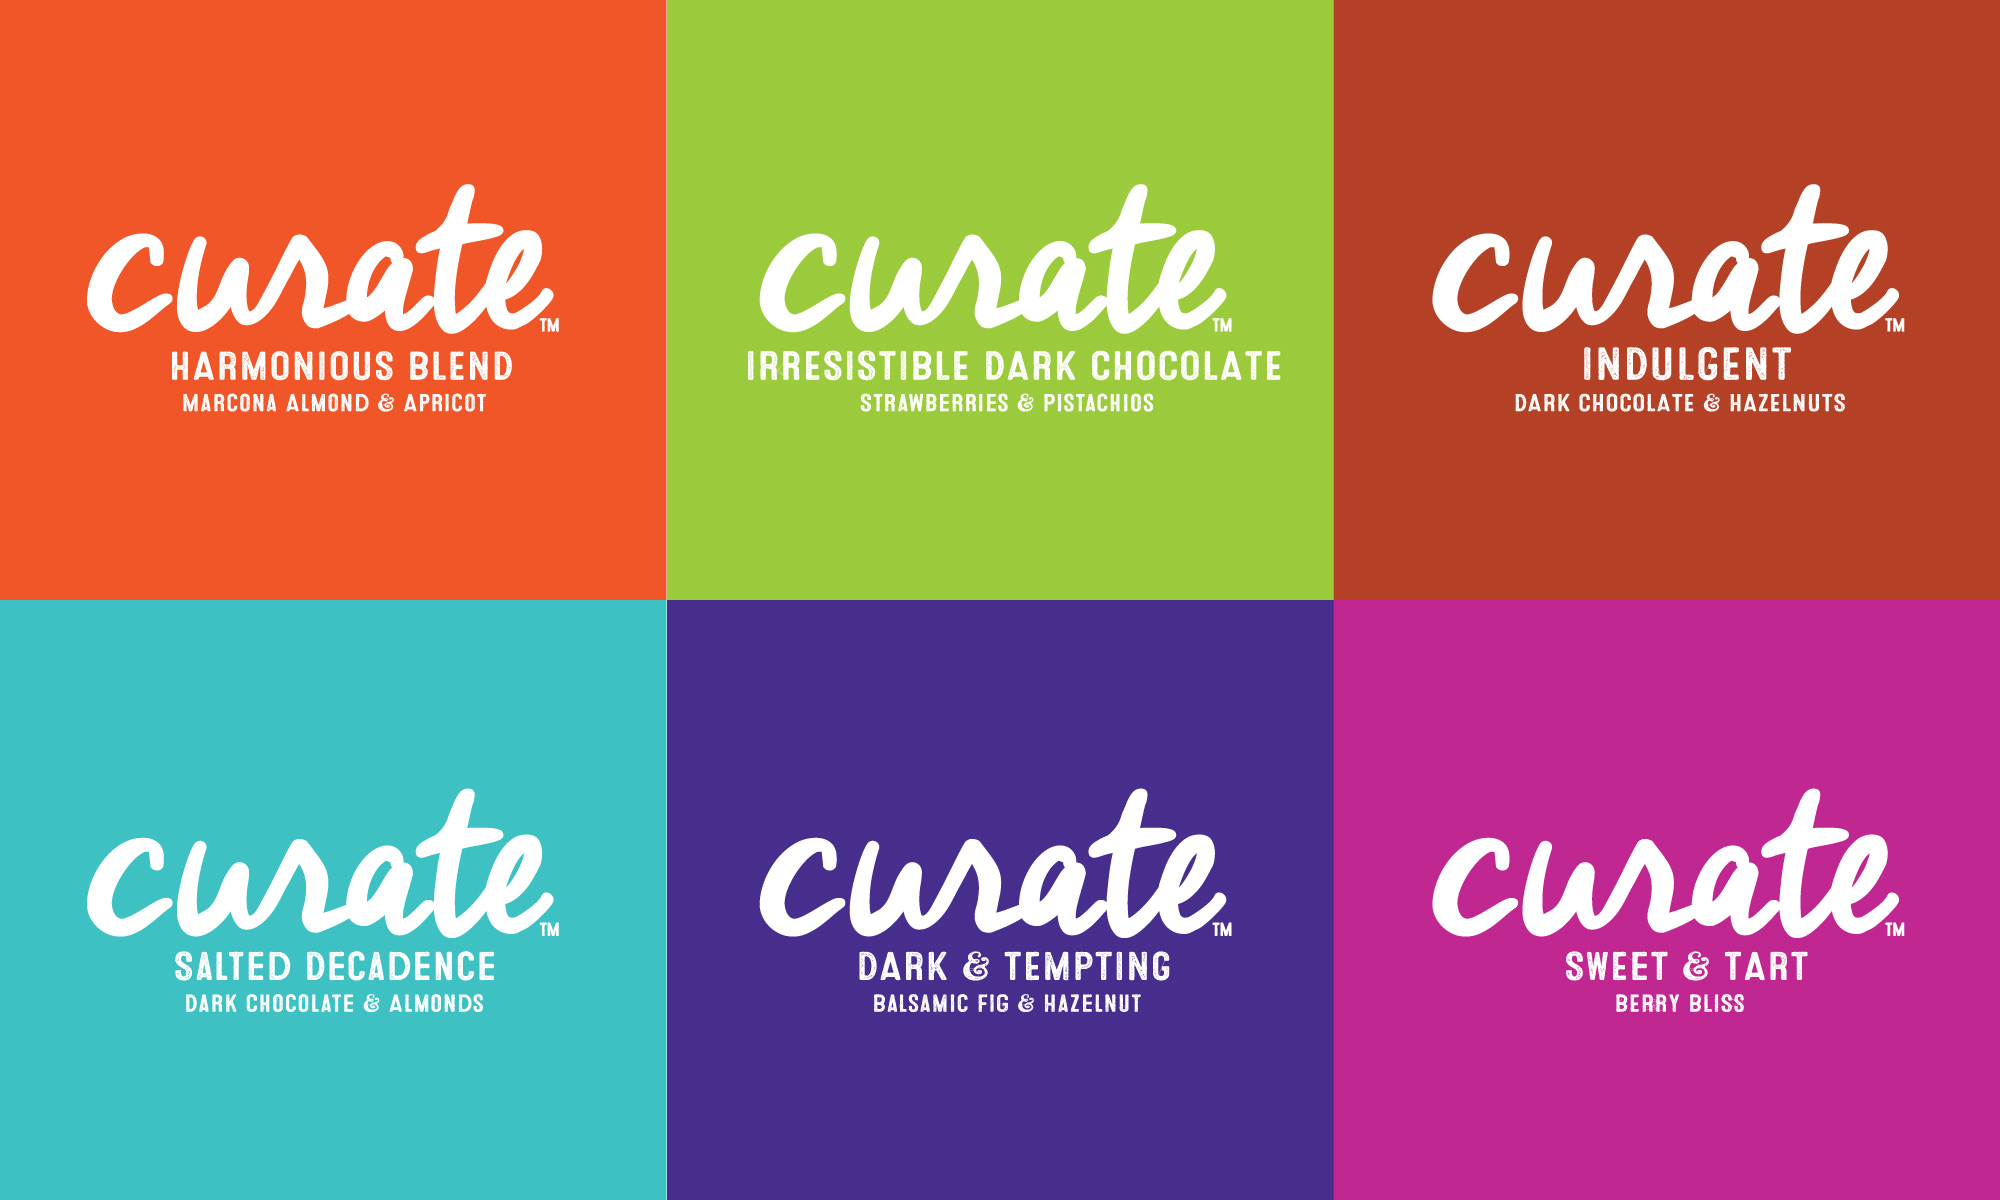 Curate_Bars_logo_flatcolor.jpg